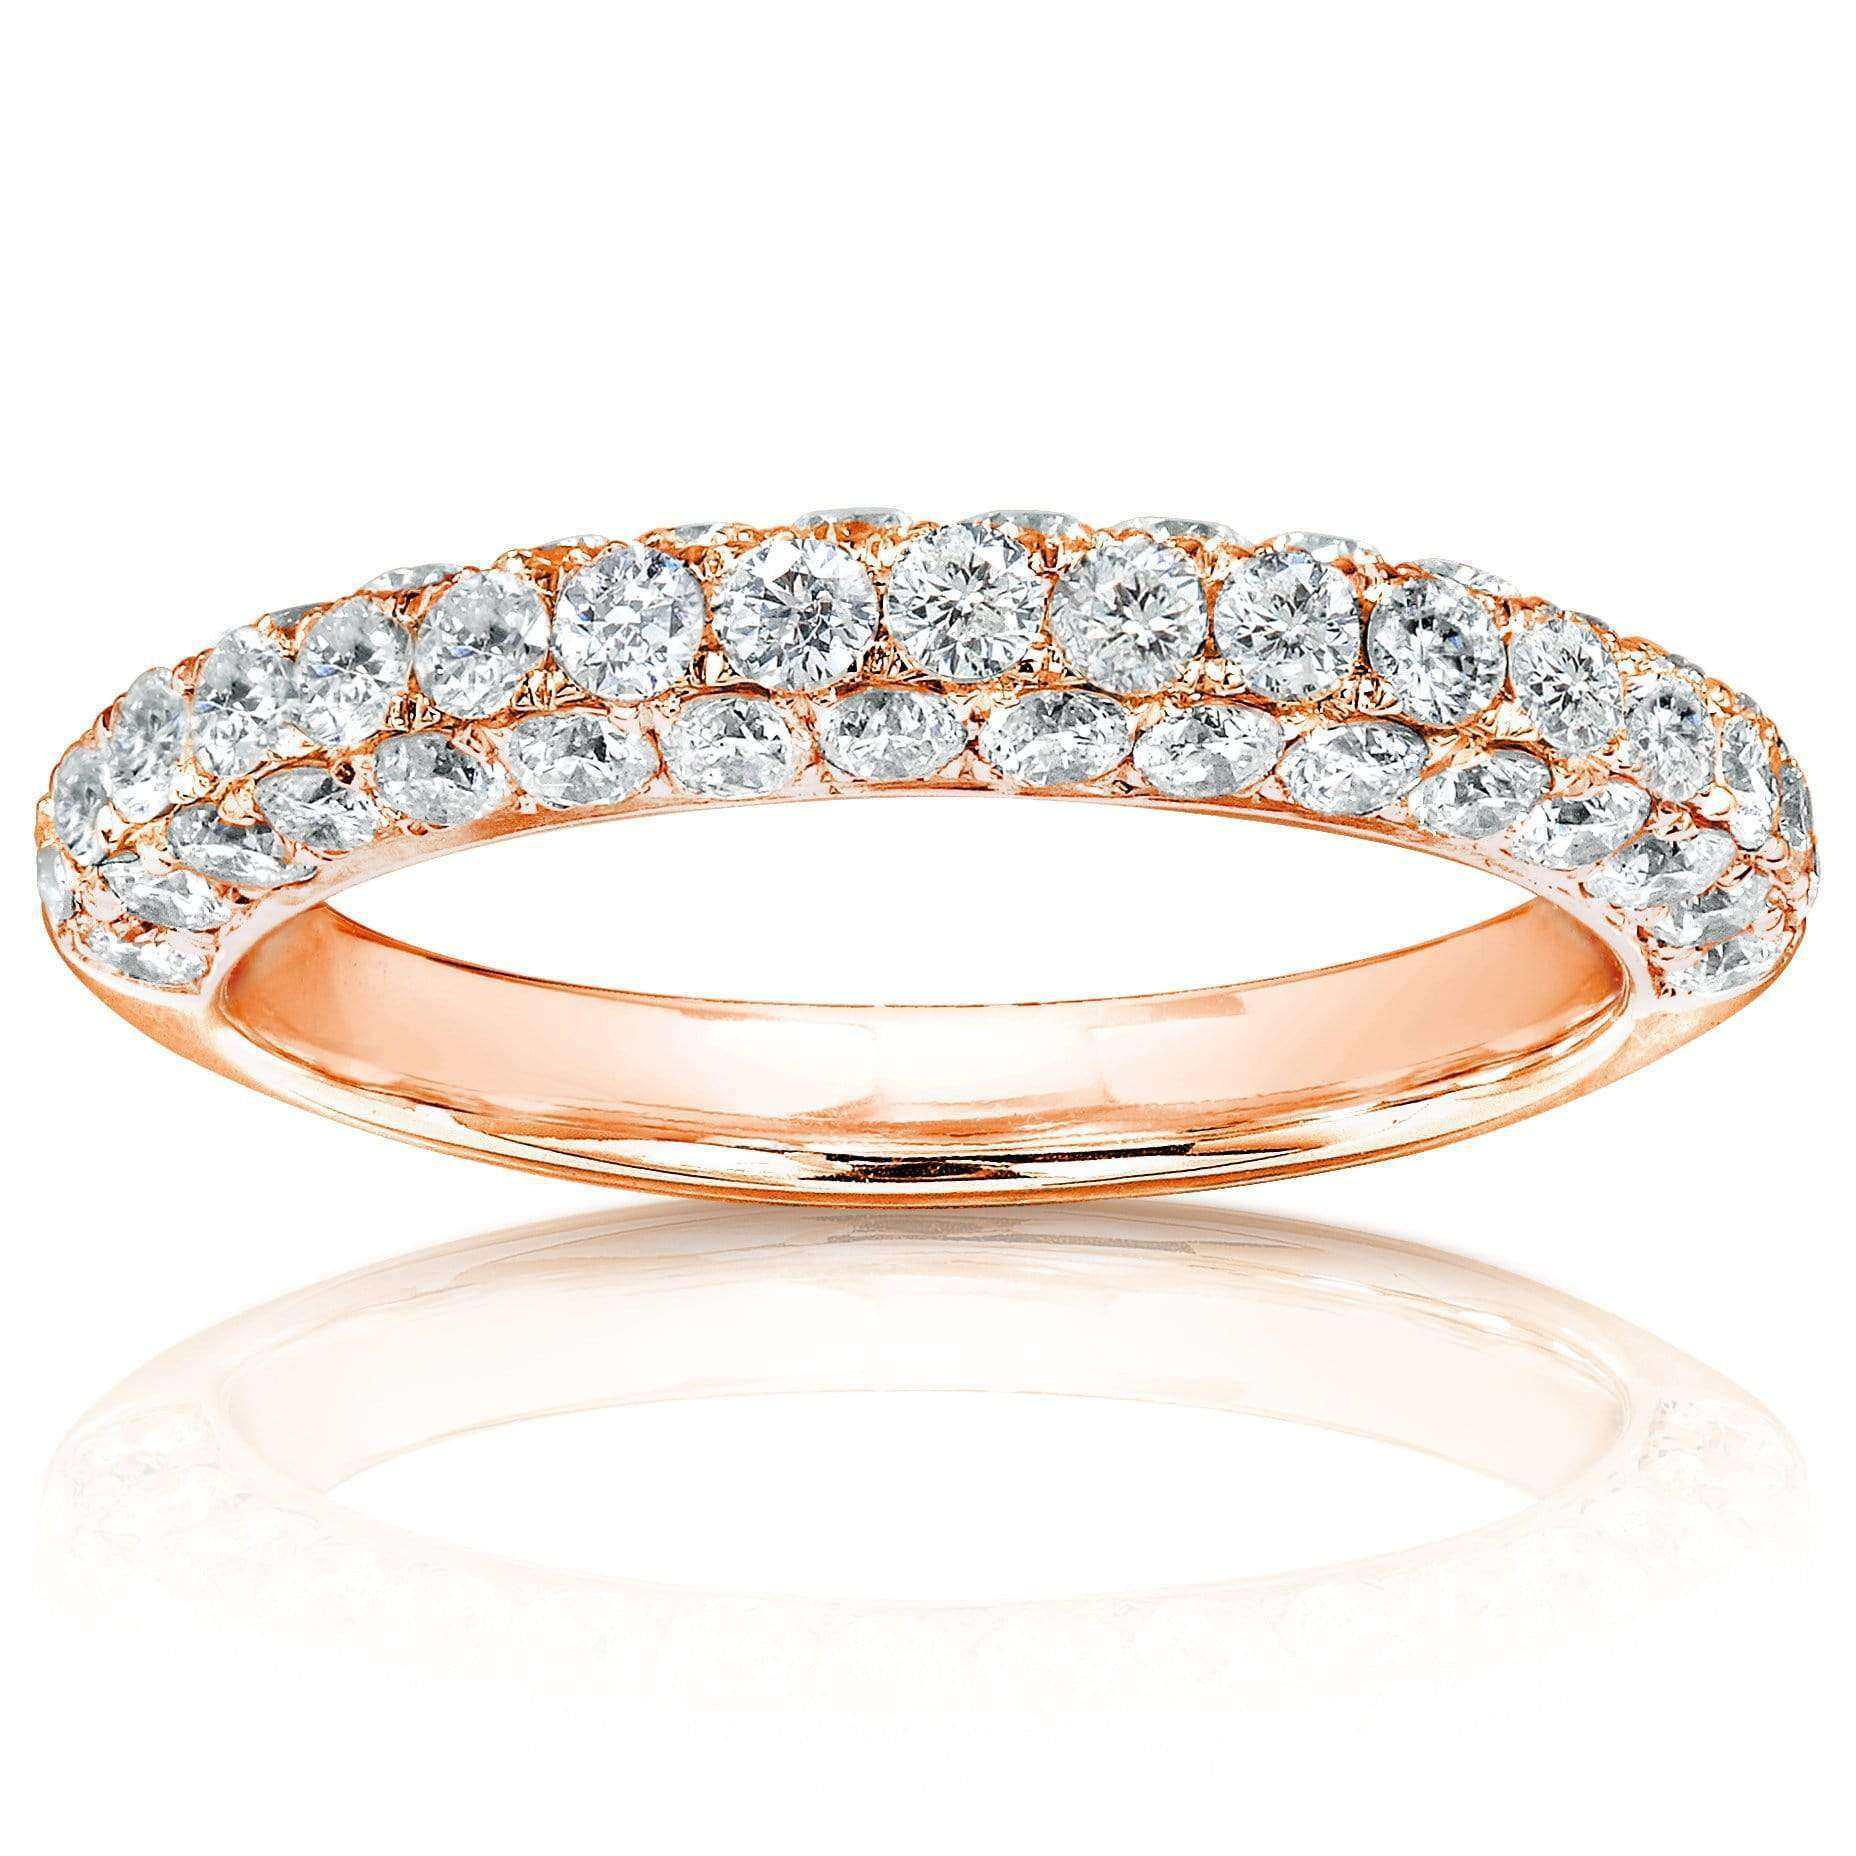 Discounts Diamond Wedding Band 1 CTW in 14K Rose Gold - 4